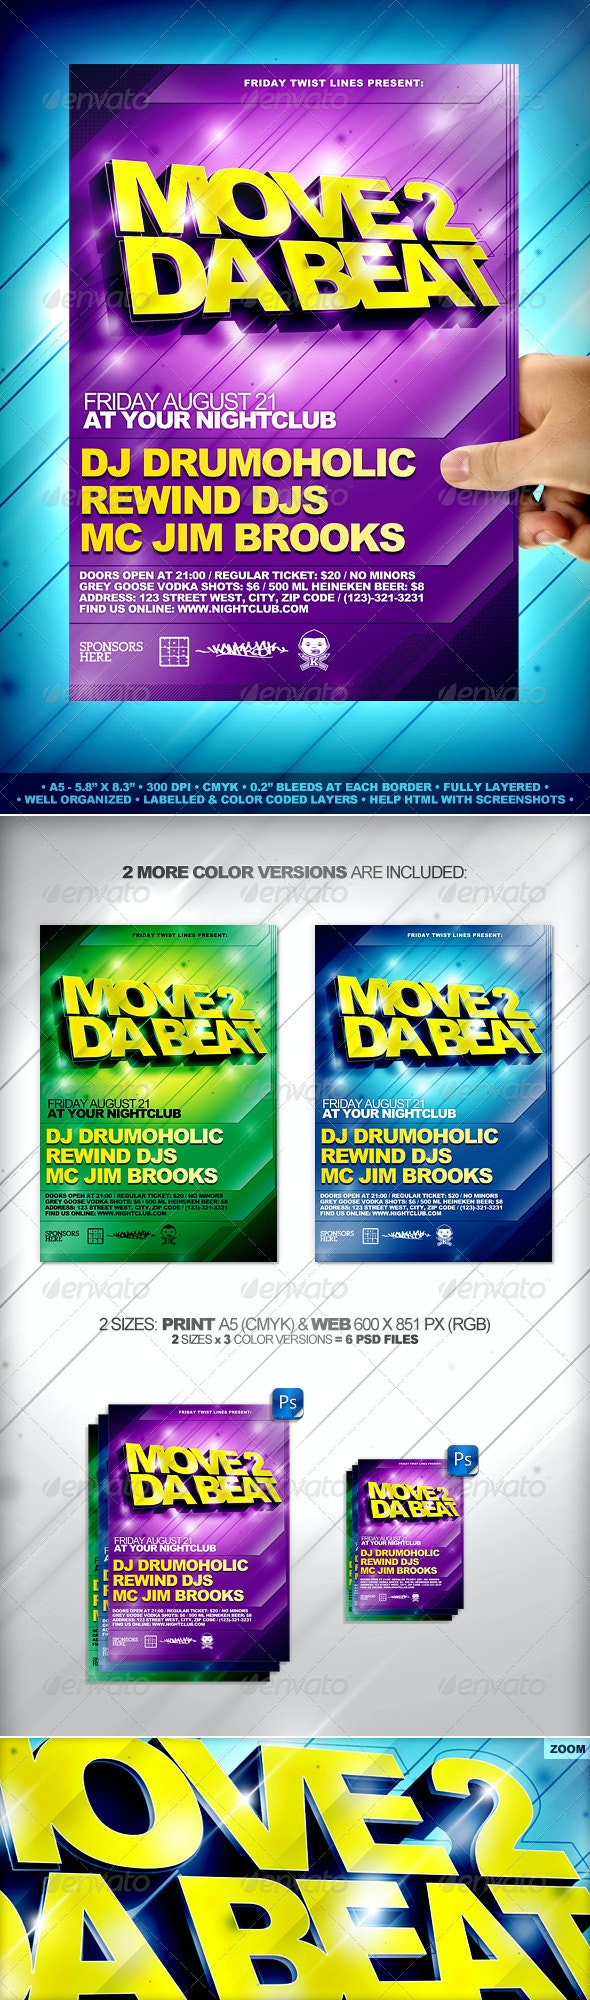 Move 2 Da Beat Flyer Template - Clubs & Parties Events